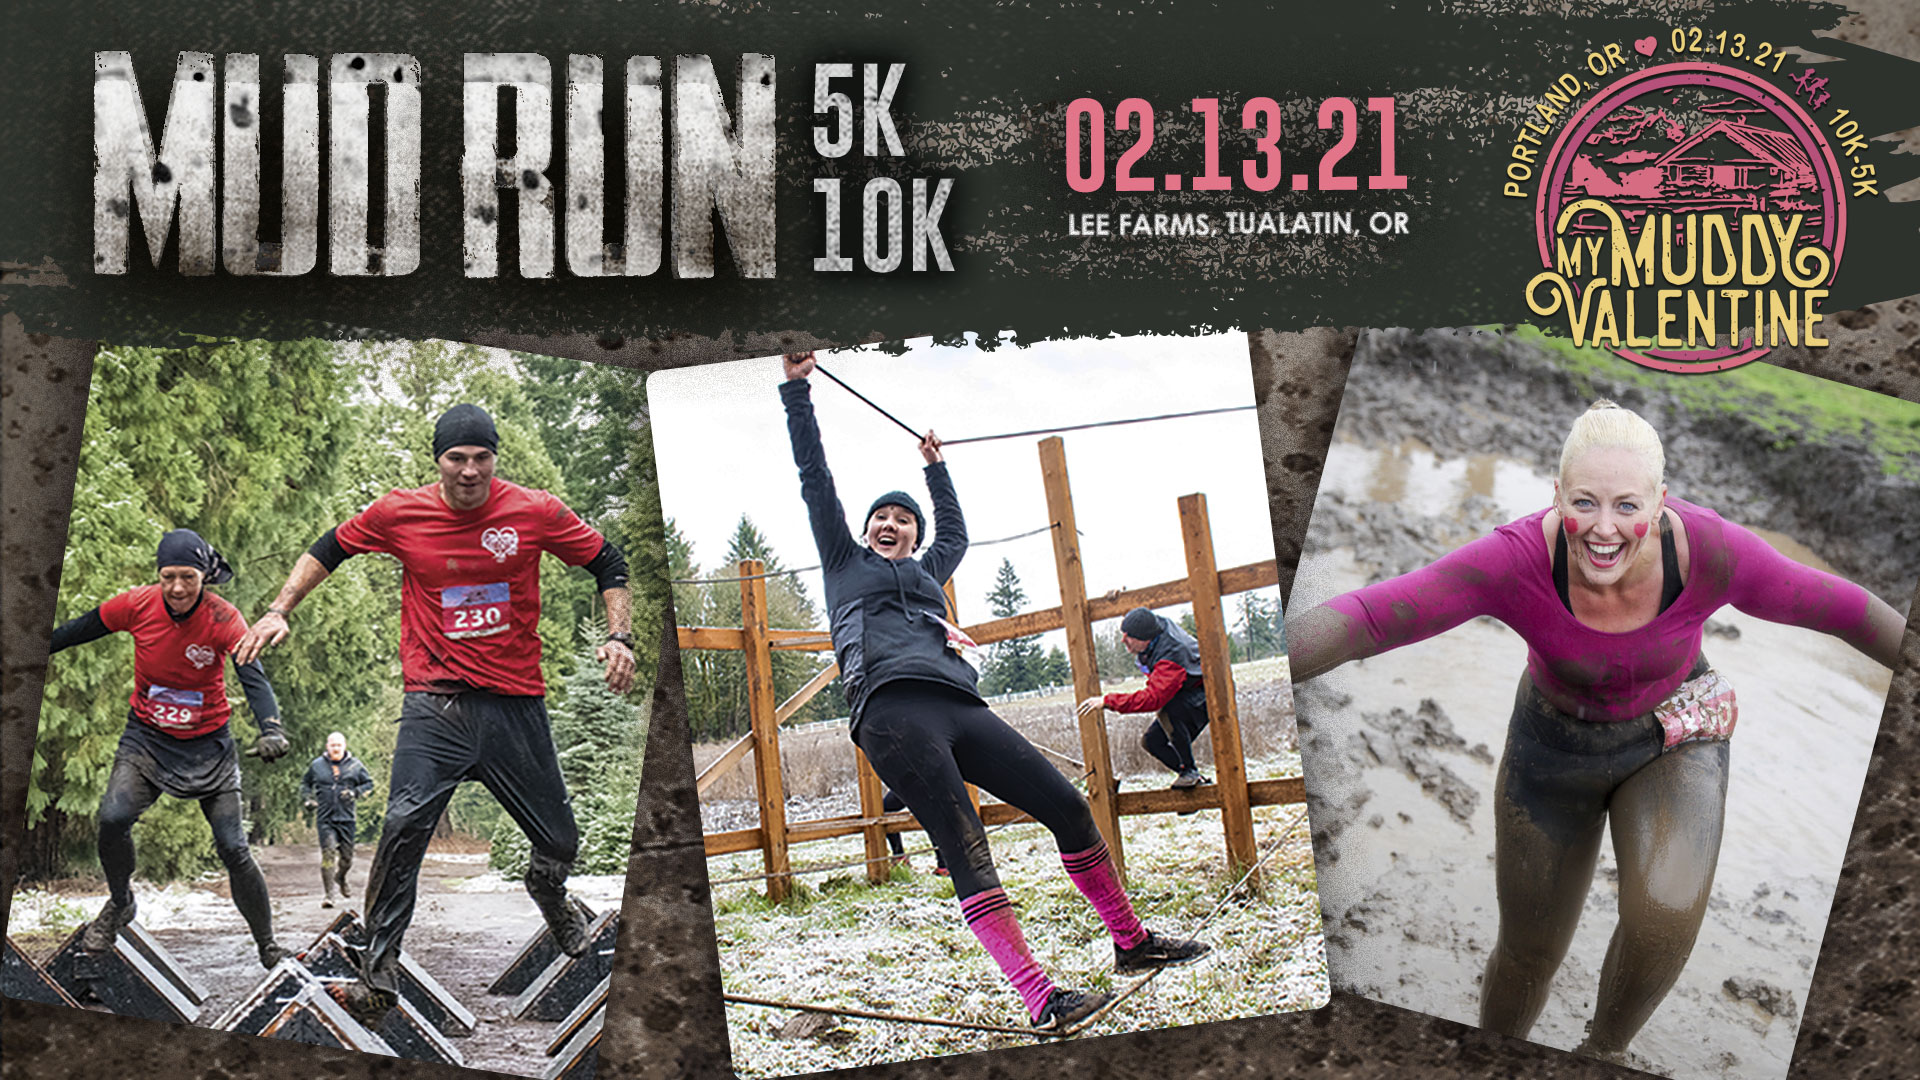 My Muddy Valentine mud run